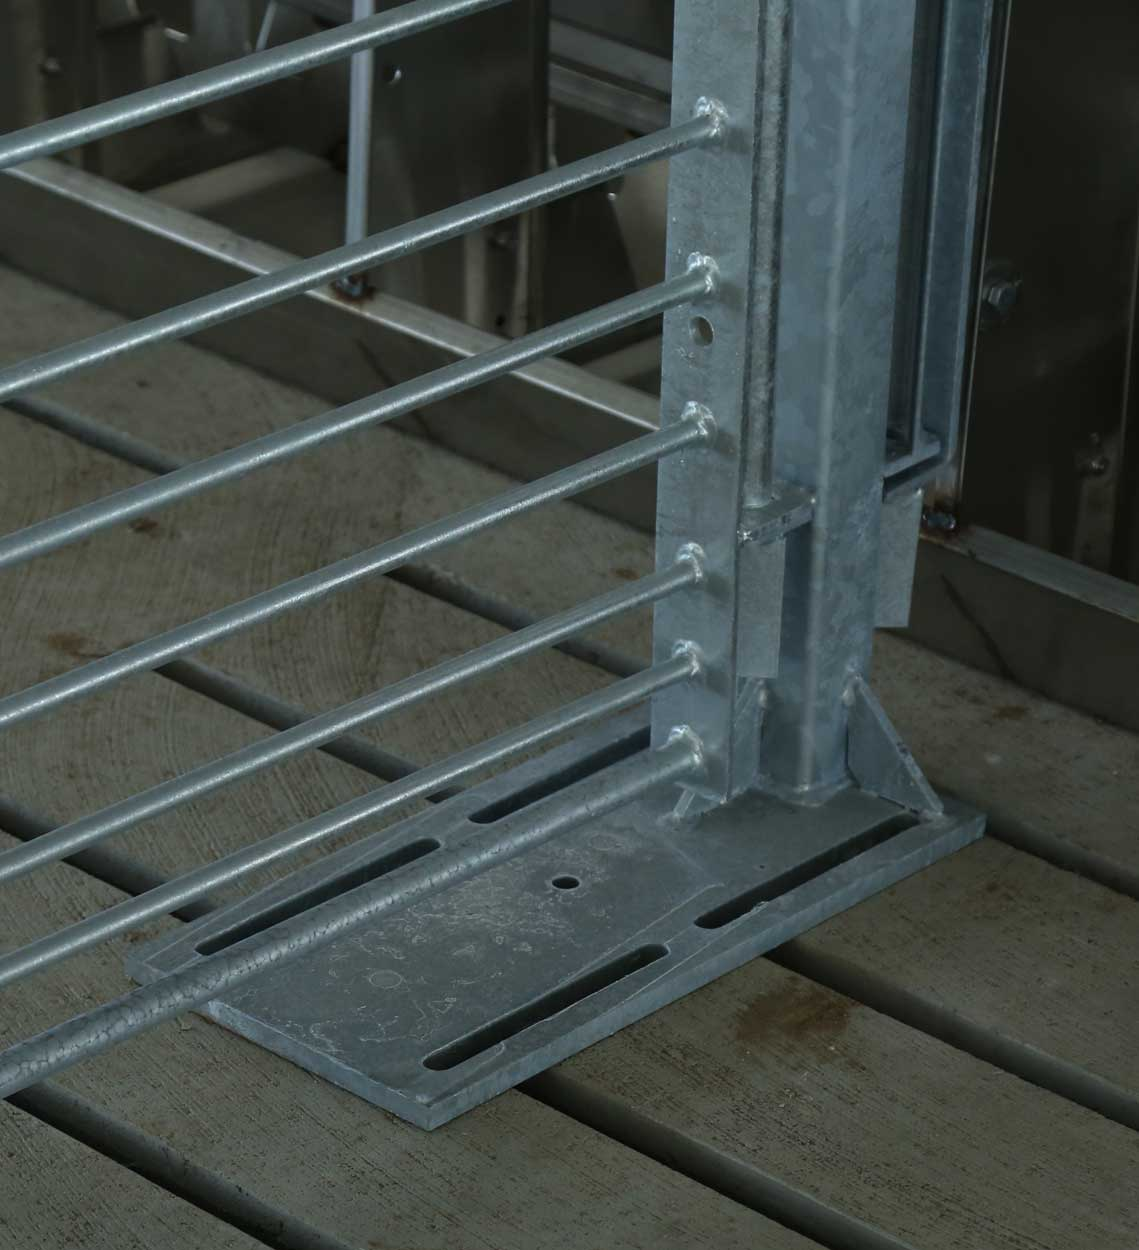 Quality designs, reliable welds and durable finishes combine to make Hog Slat penning, post and installation equipment the smart choice for all your confinement gating needs.